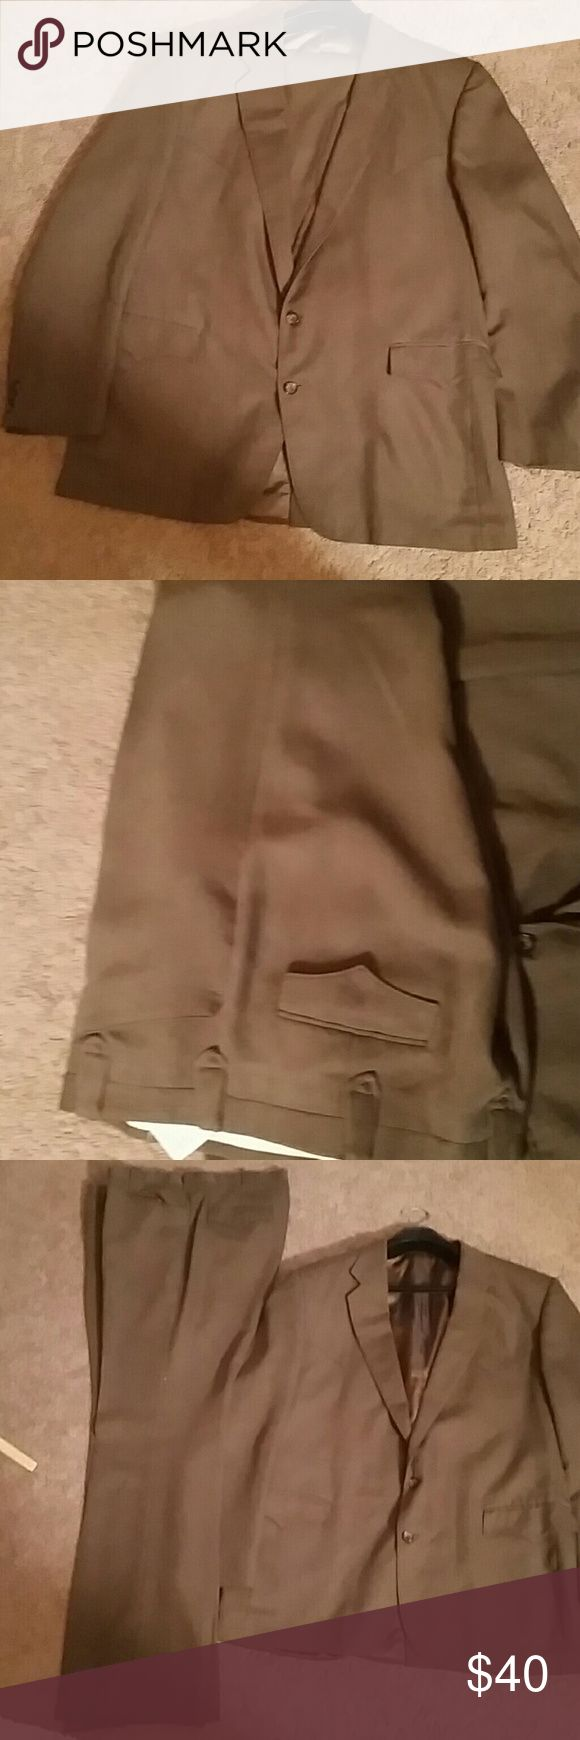 Men's brown suit Blazer 48L slacks 40in Men's Brown suit Blazer is lined slacks are 40 waist matching Blazer is 48 long really nice suit no rips no stains no tears made in Dallas Texas Circle S Suits & Blazers Suits